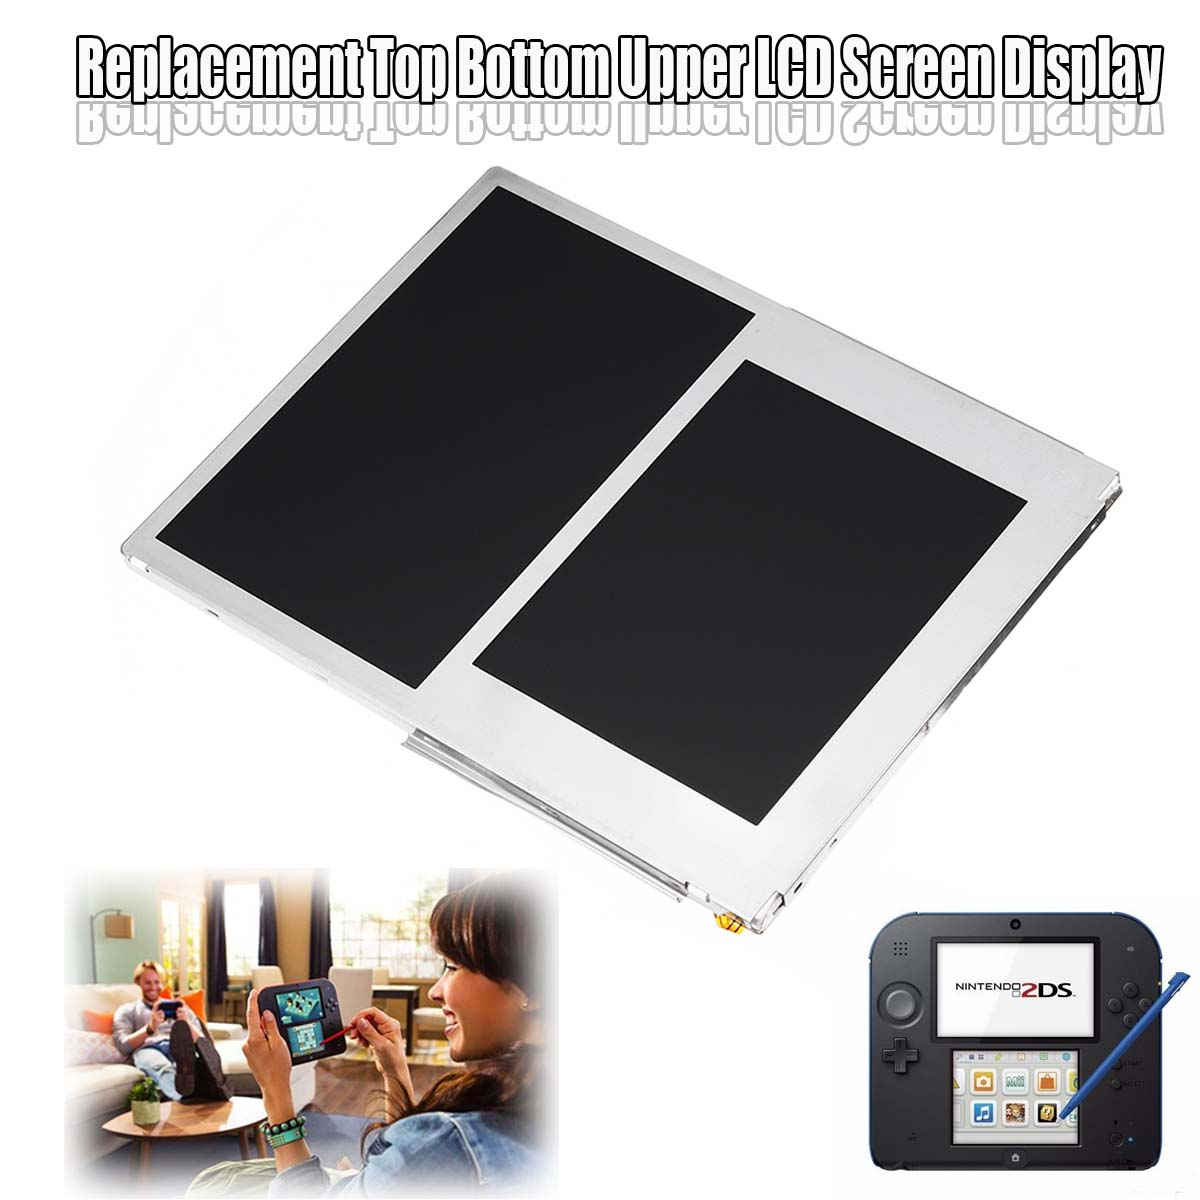 LCD Screen for 2DS Video Games Display Replacement Accessories Top Bottom Upper Lower LCD Screen Panel Only for 2DS 2013 image